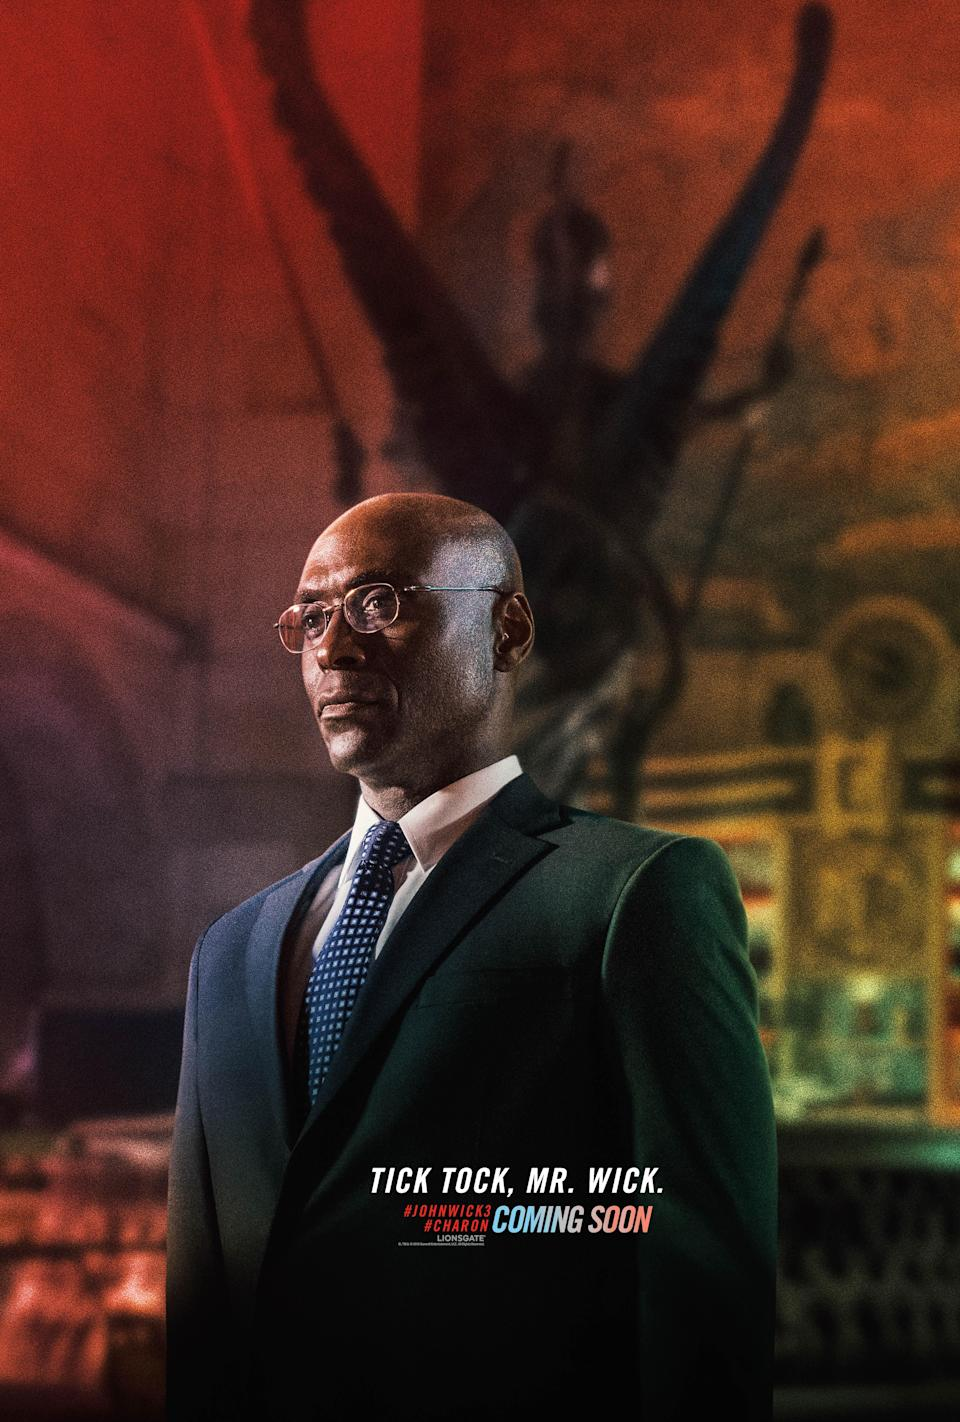 <p>It's not a John Wick movie without Lance Reddick's Continental Hotel concierge. He's traditionally been pally with Wick, but can their friendship survive the third instalment's manhunt plot? </p>